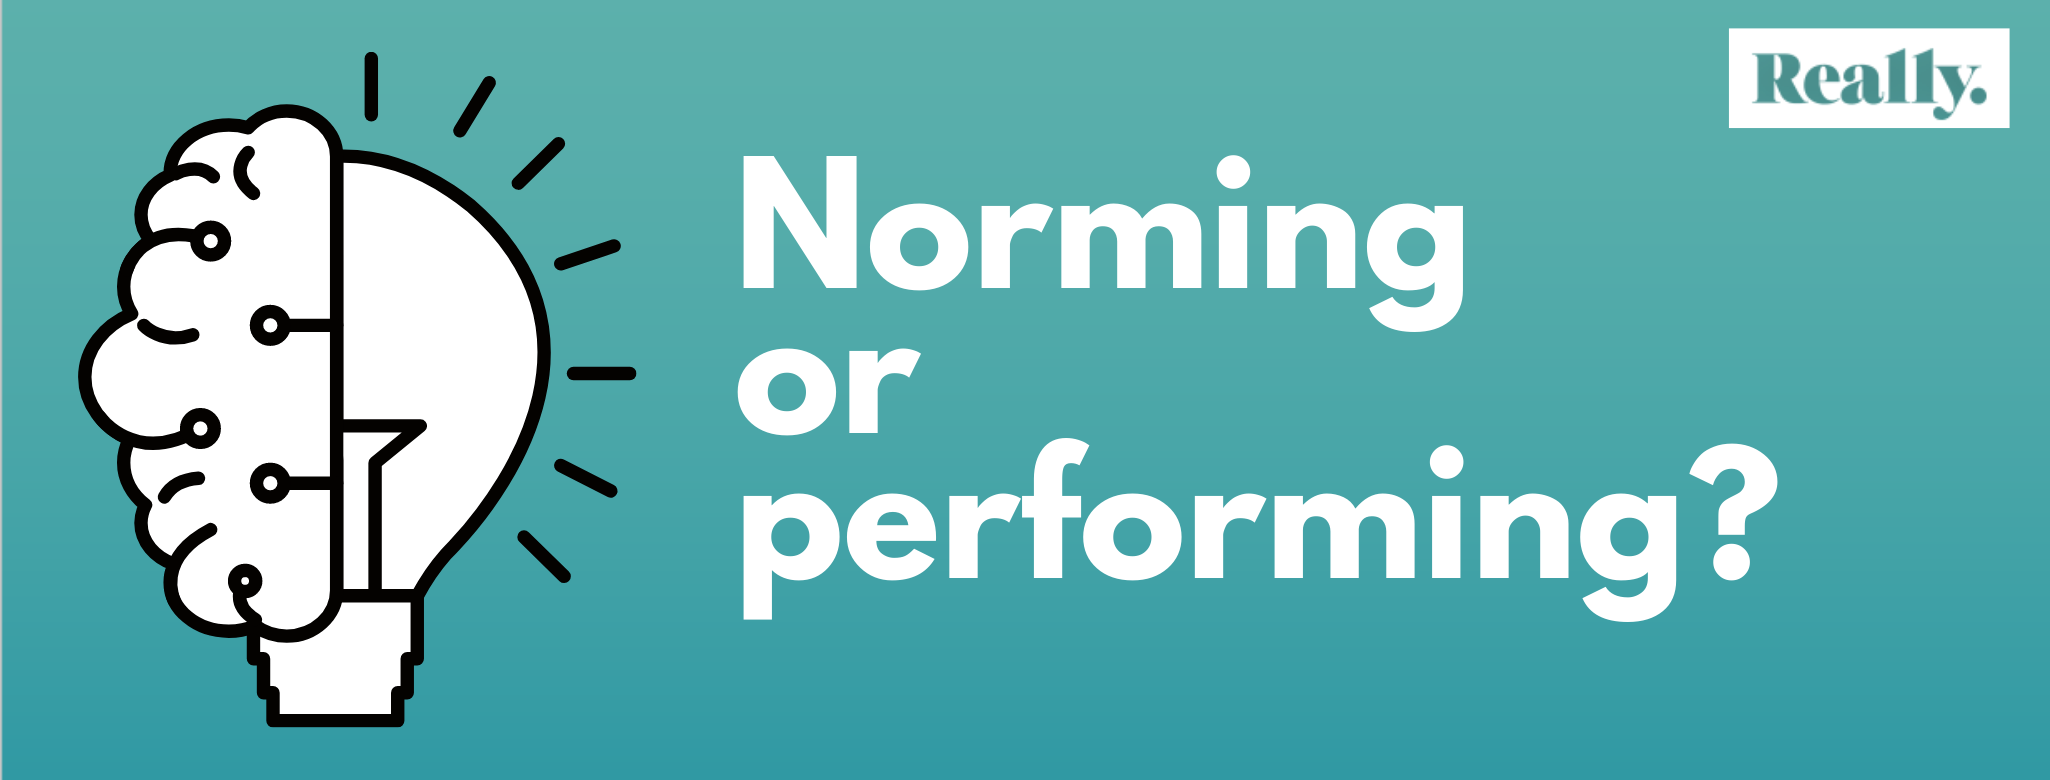 Is your head at norming or performing stage?